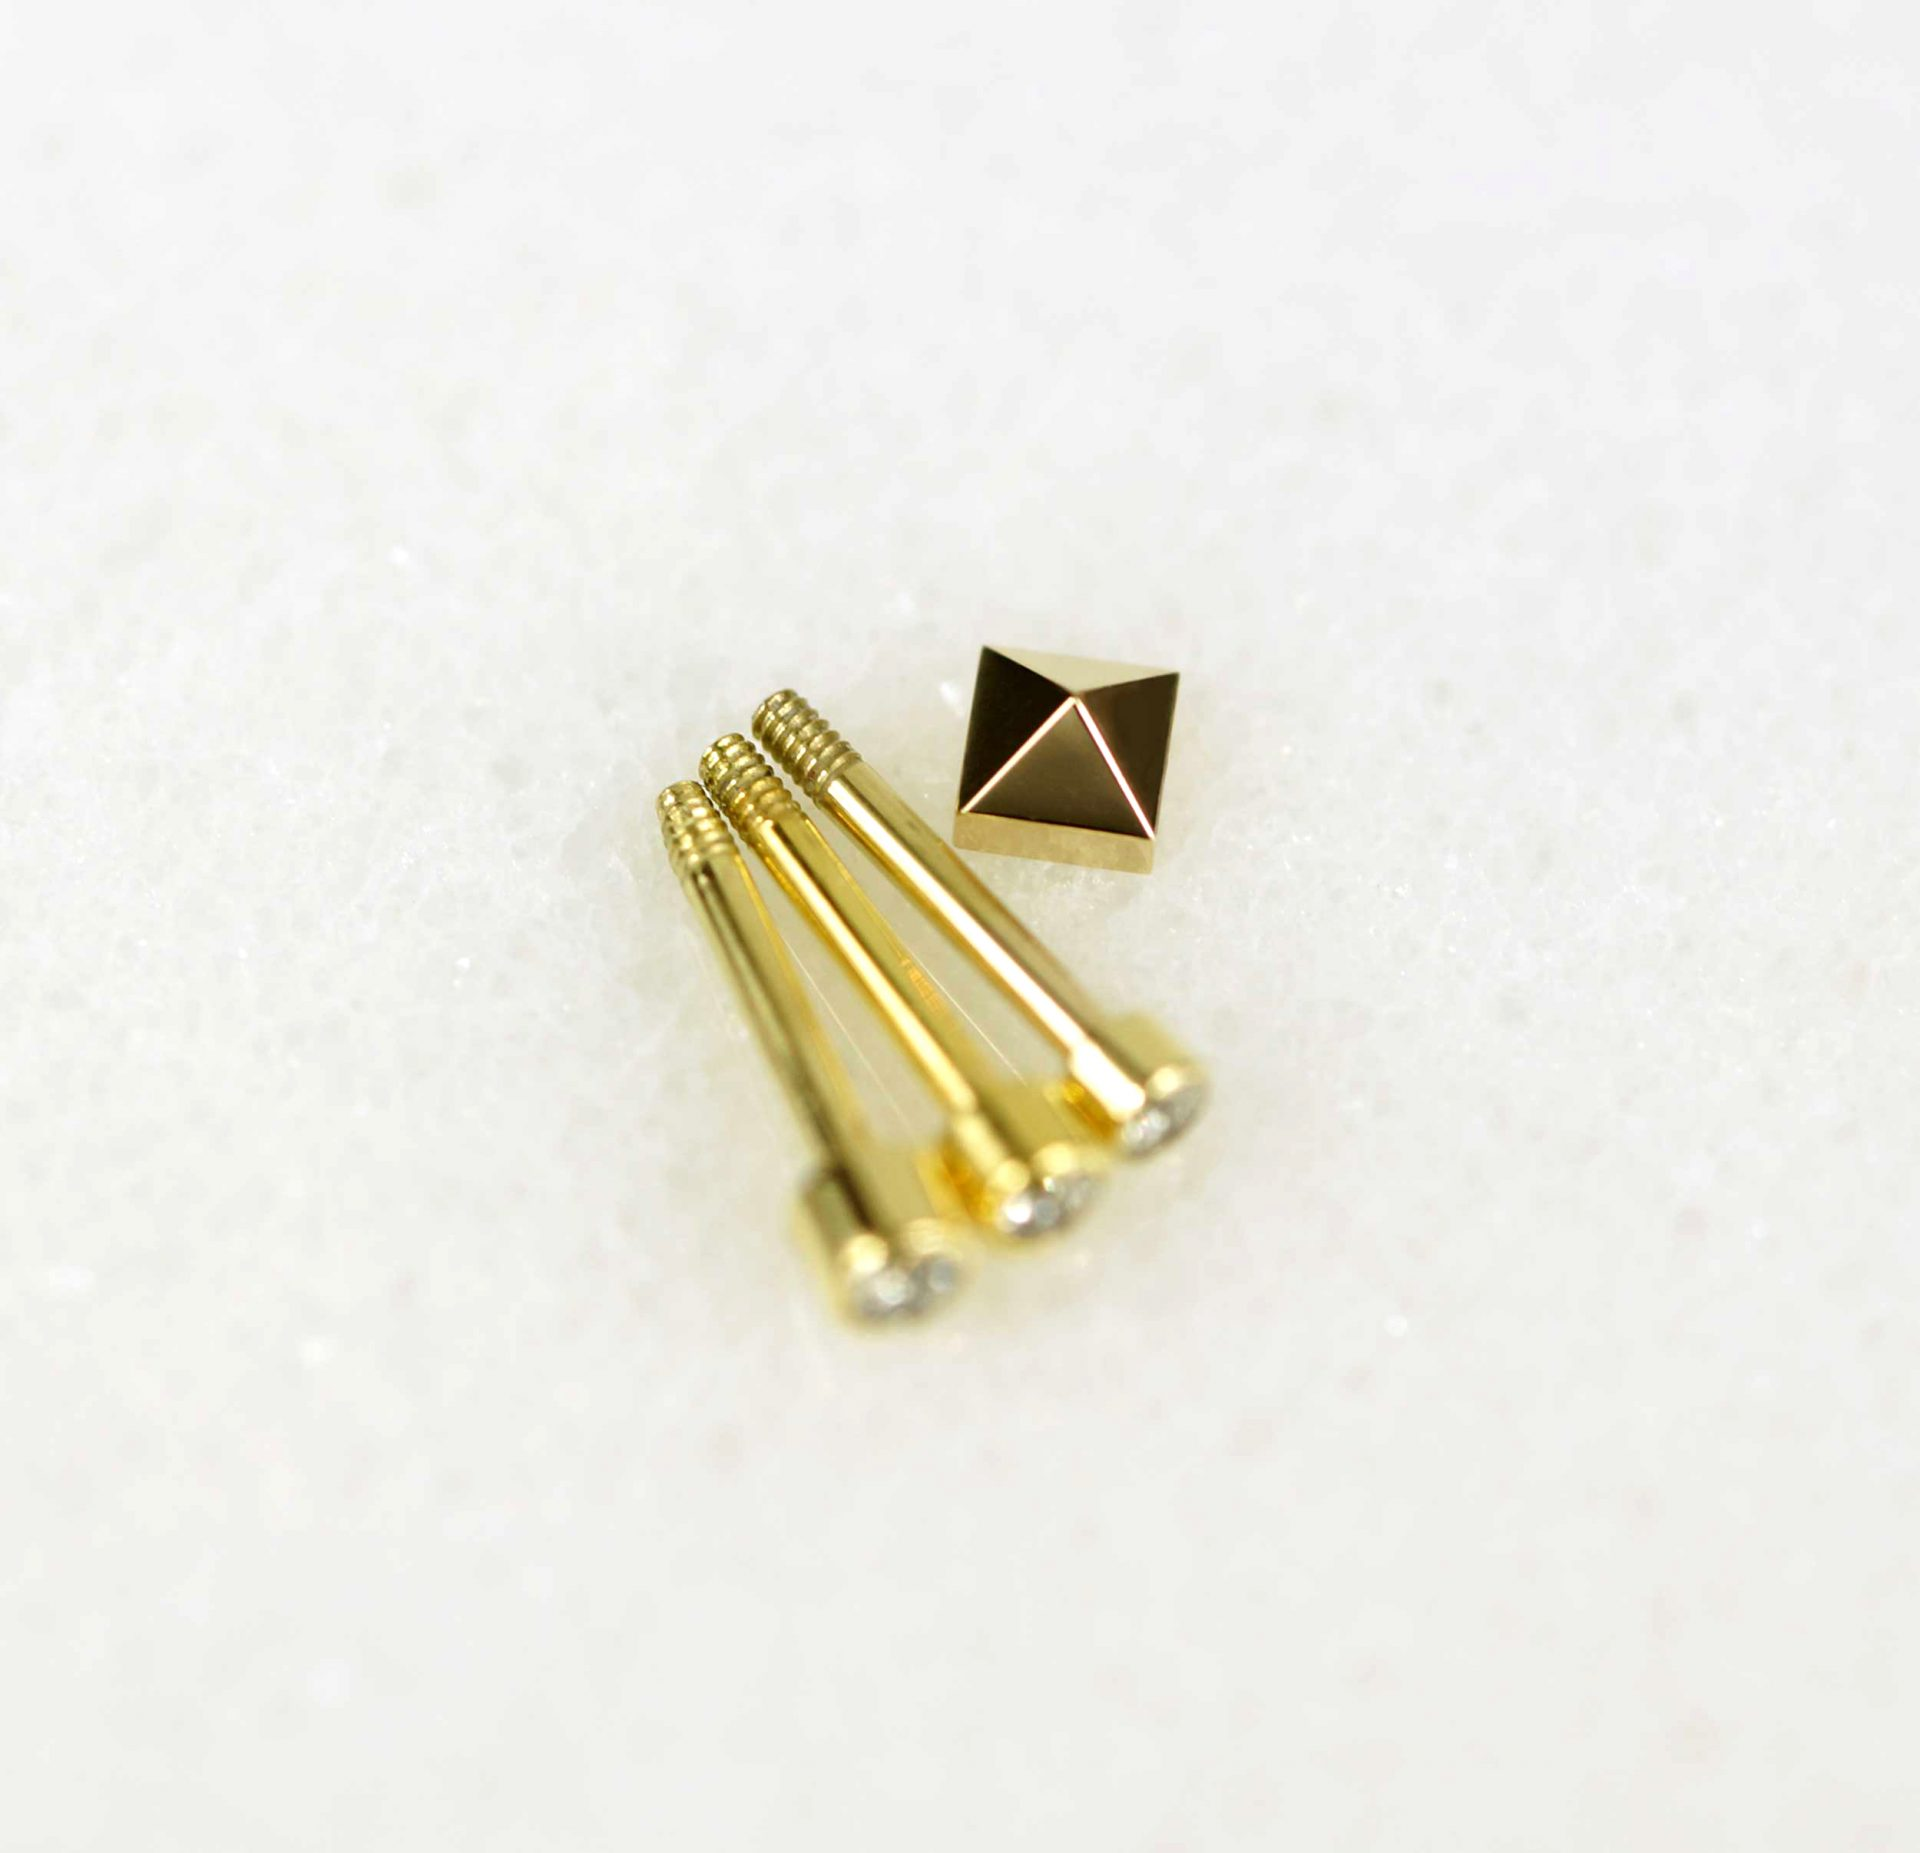 helix-diamond-piercing-studs-screw-backs-gold-buy-online-lena-cohen-uk